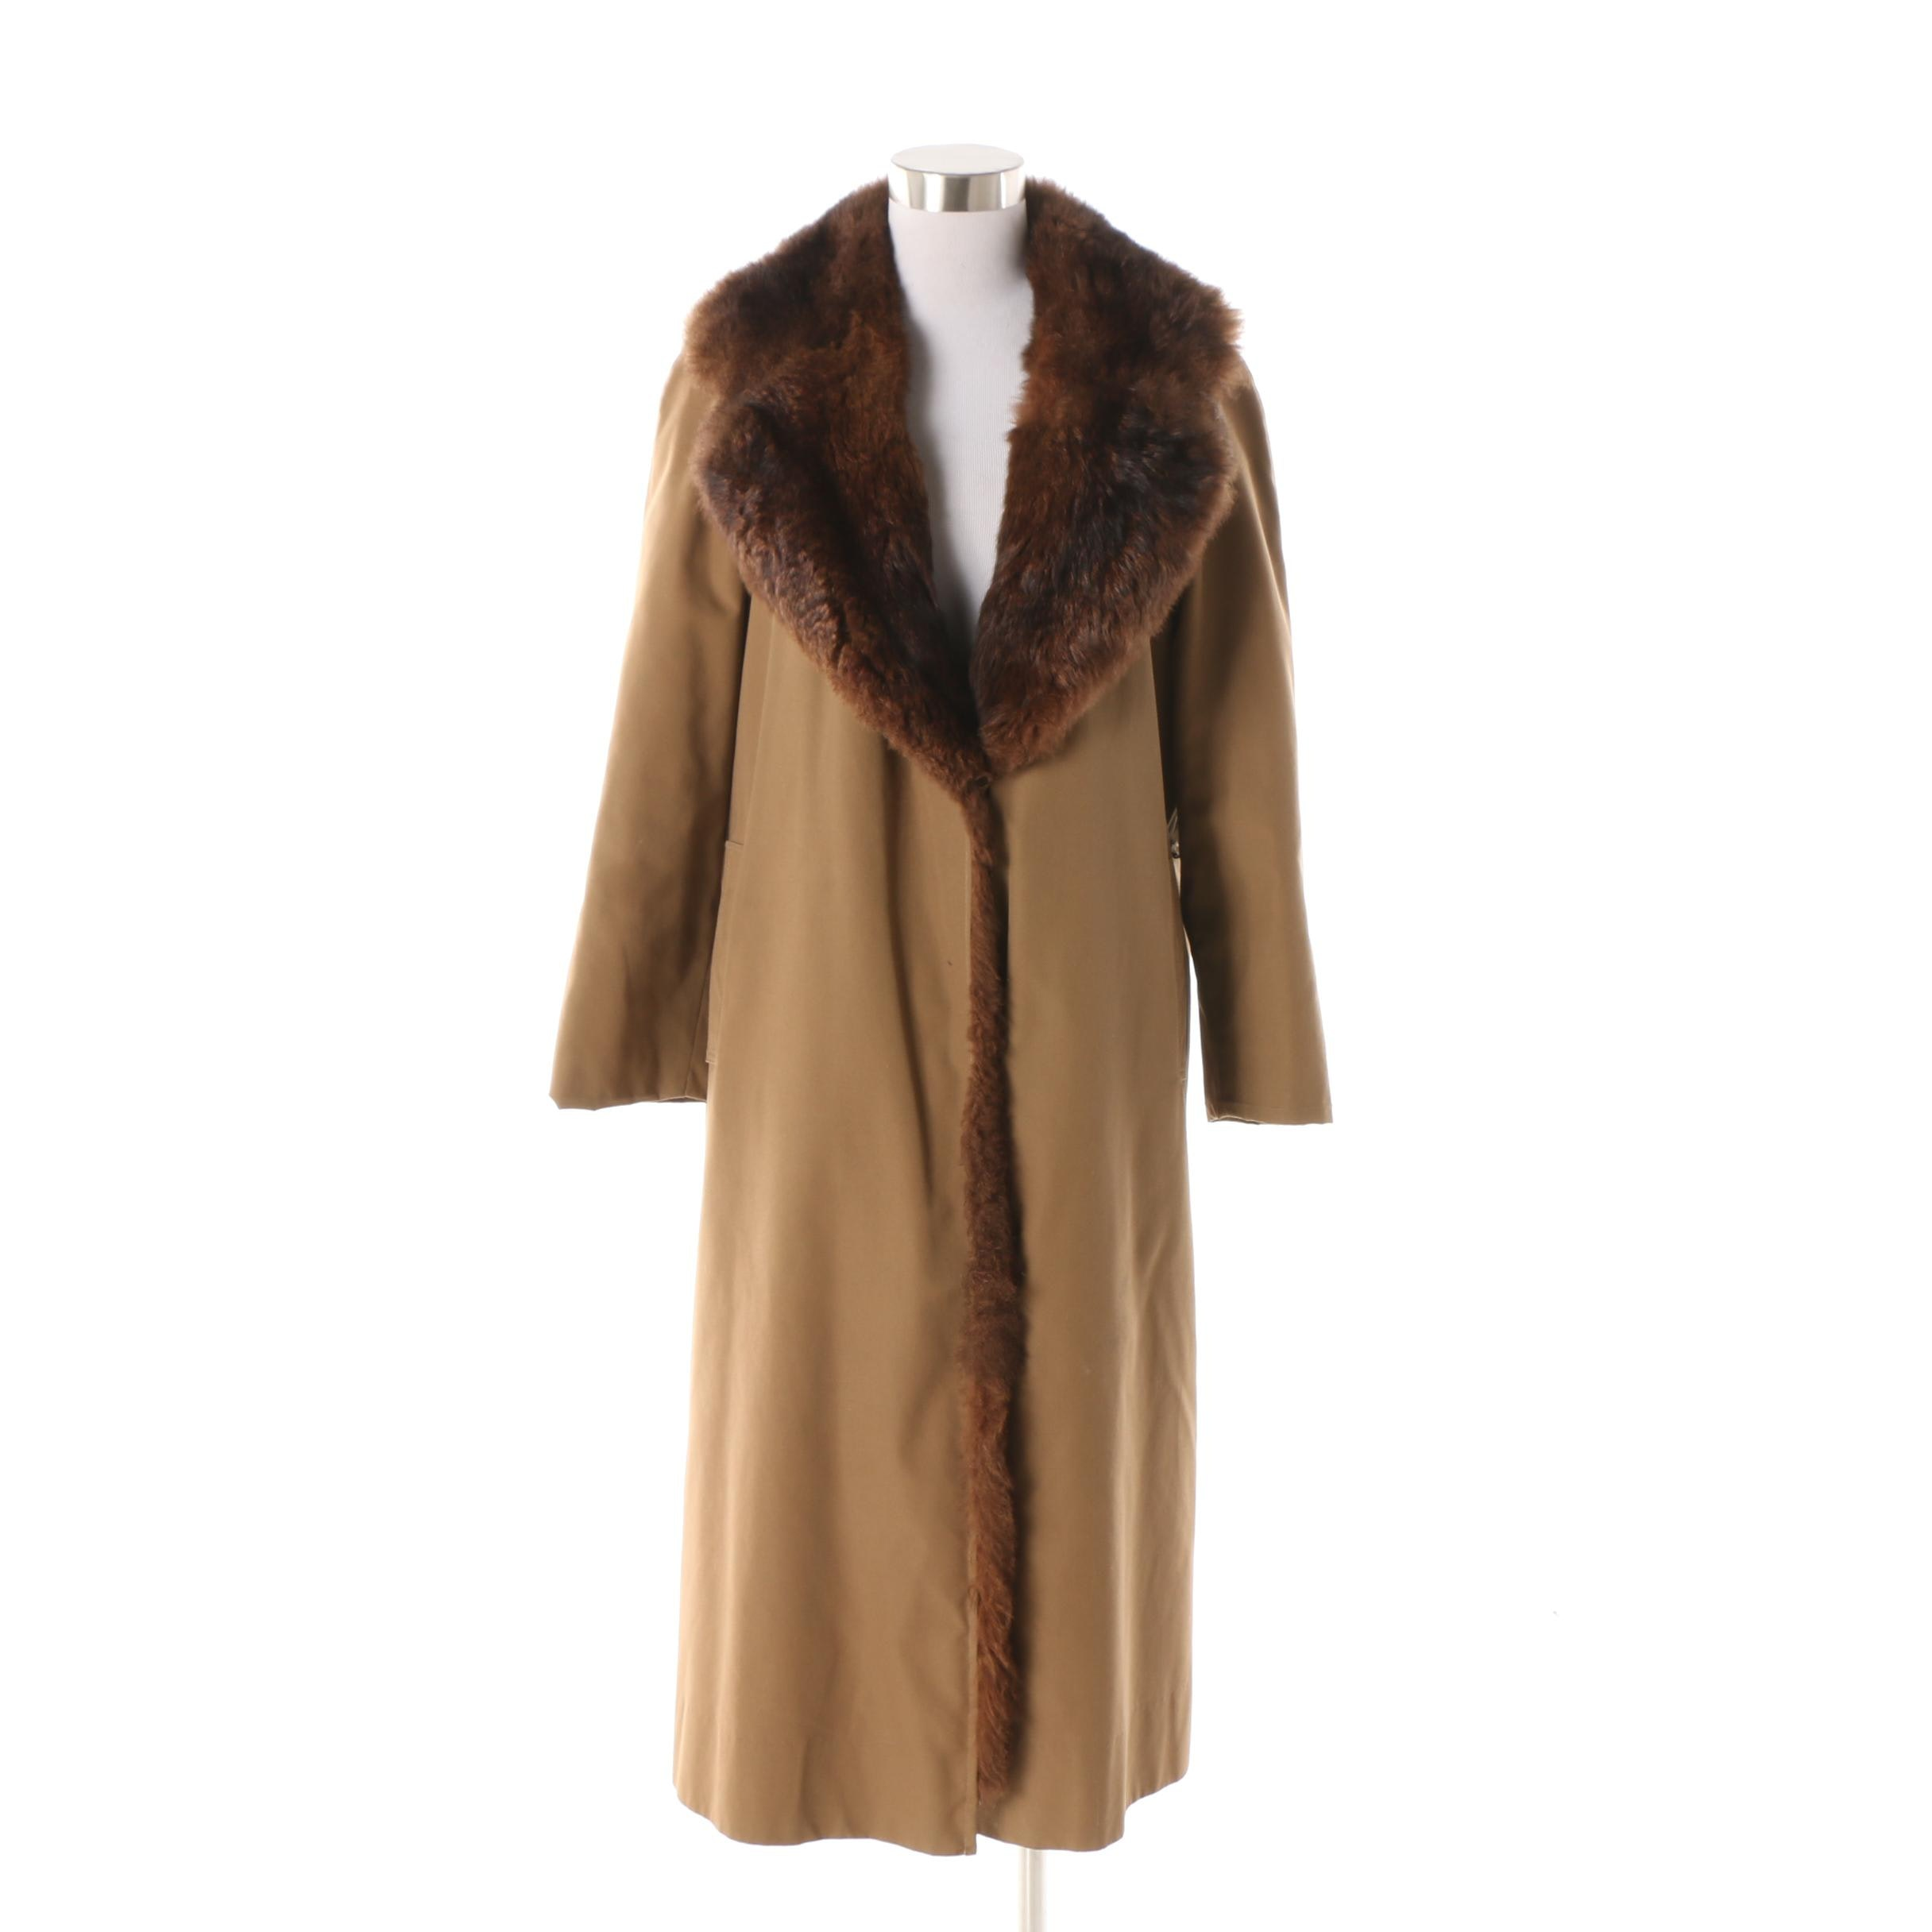 I. Magnin Canvas Coat with Dyed Muskrat Fur Collar and Lining